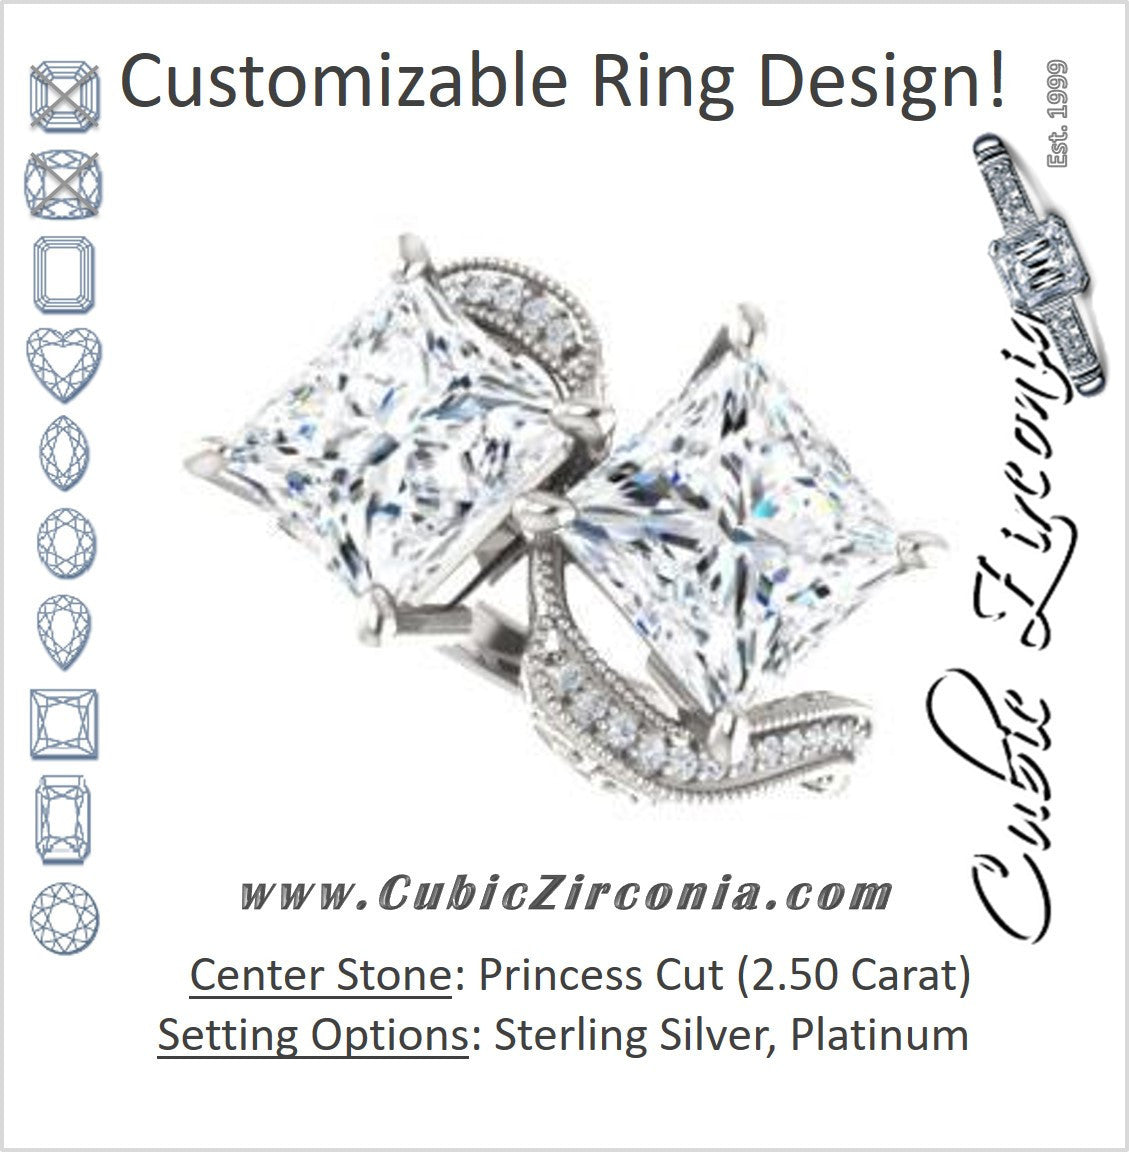 Unique Sterling Silver 925 Earrings 3 Carat Cubic Zirconia Princess Cut Stones Set in Handset Pave Settings